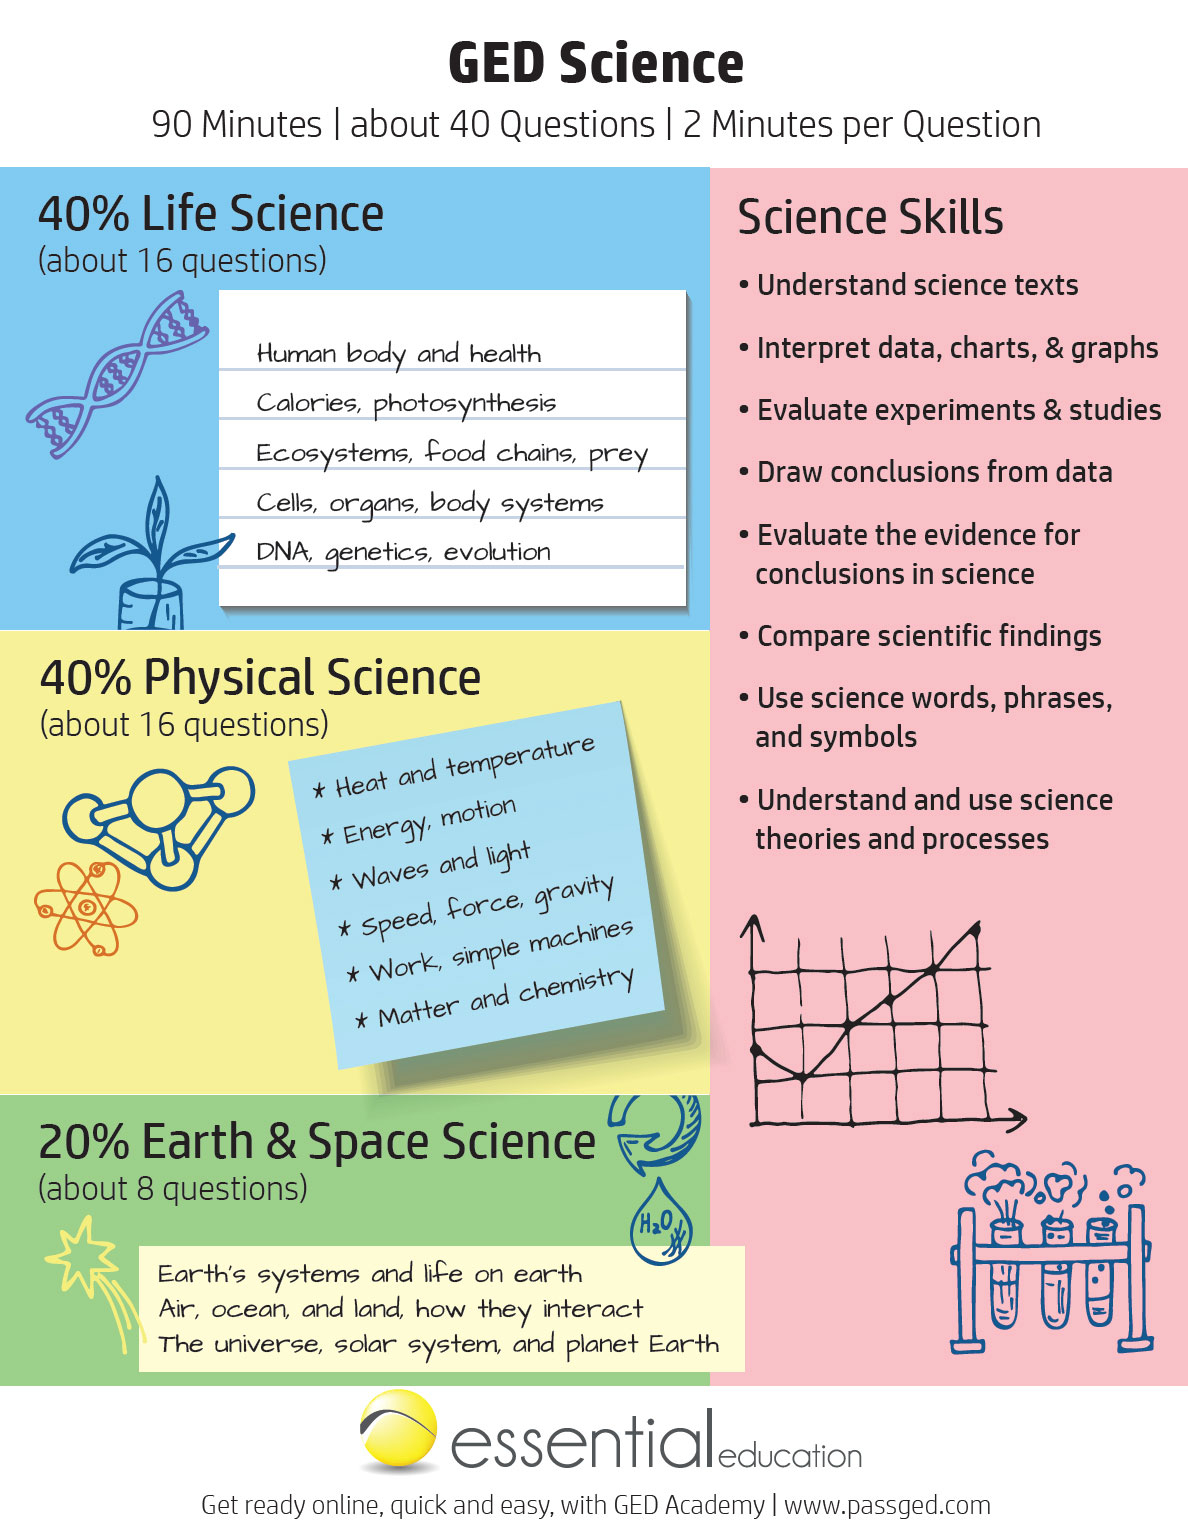 Ged Science Study Guide 2020 [Ged Academy]